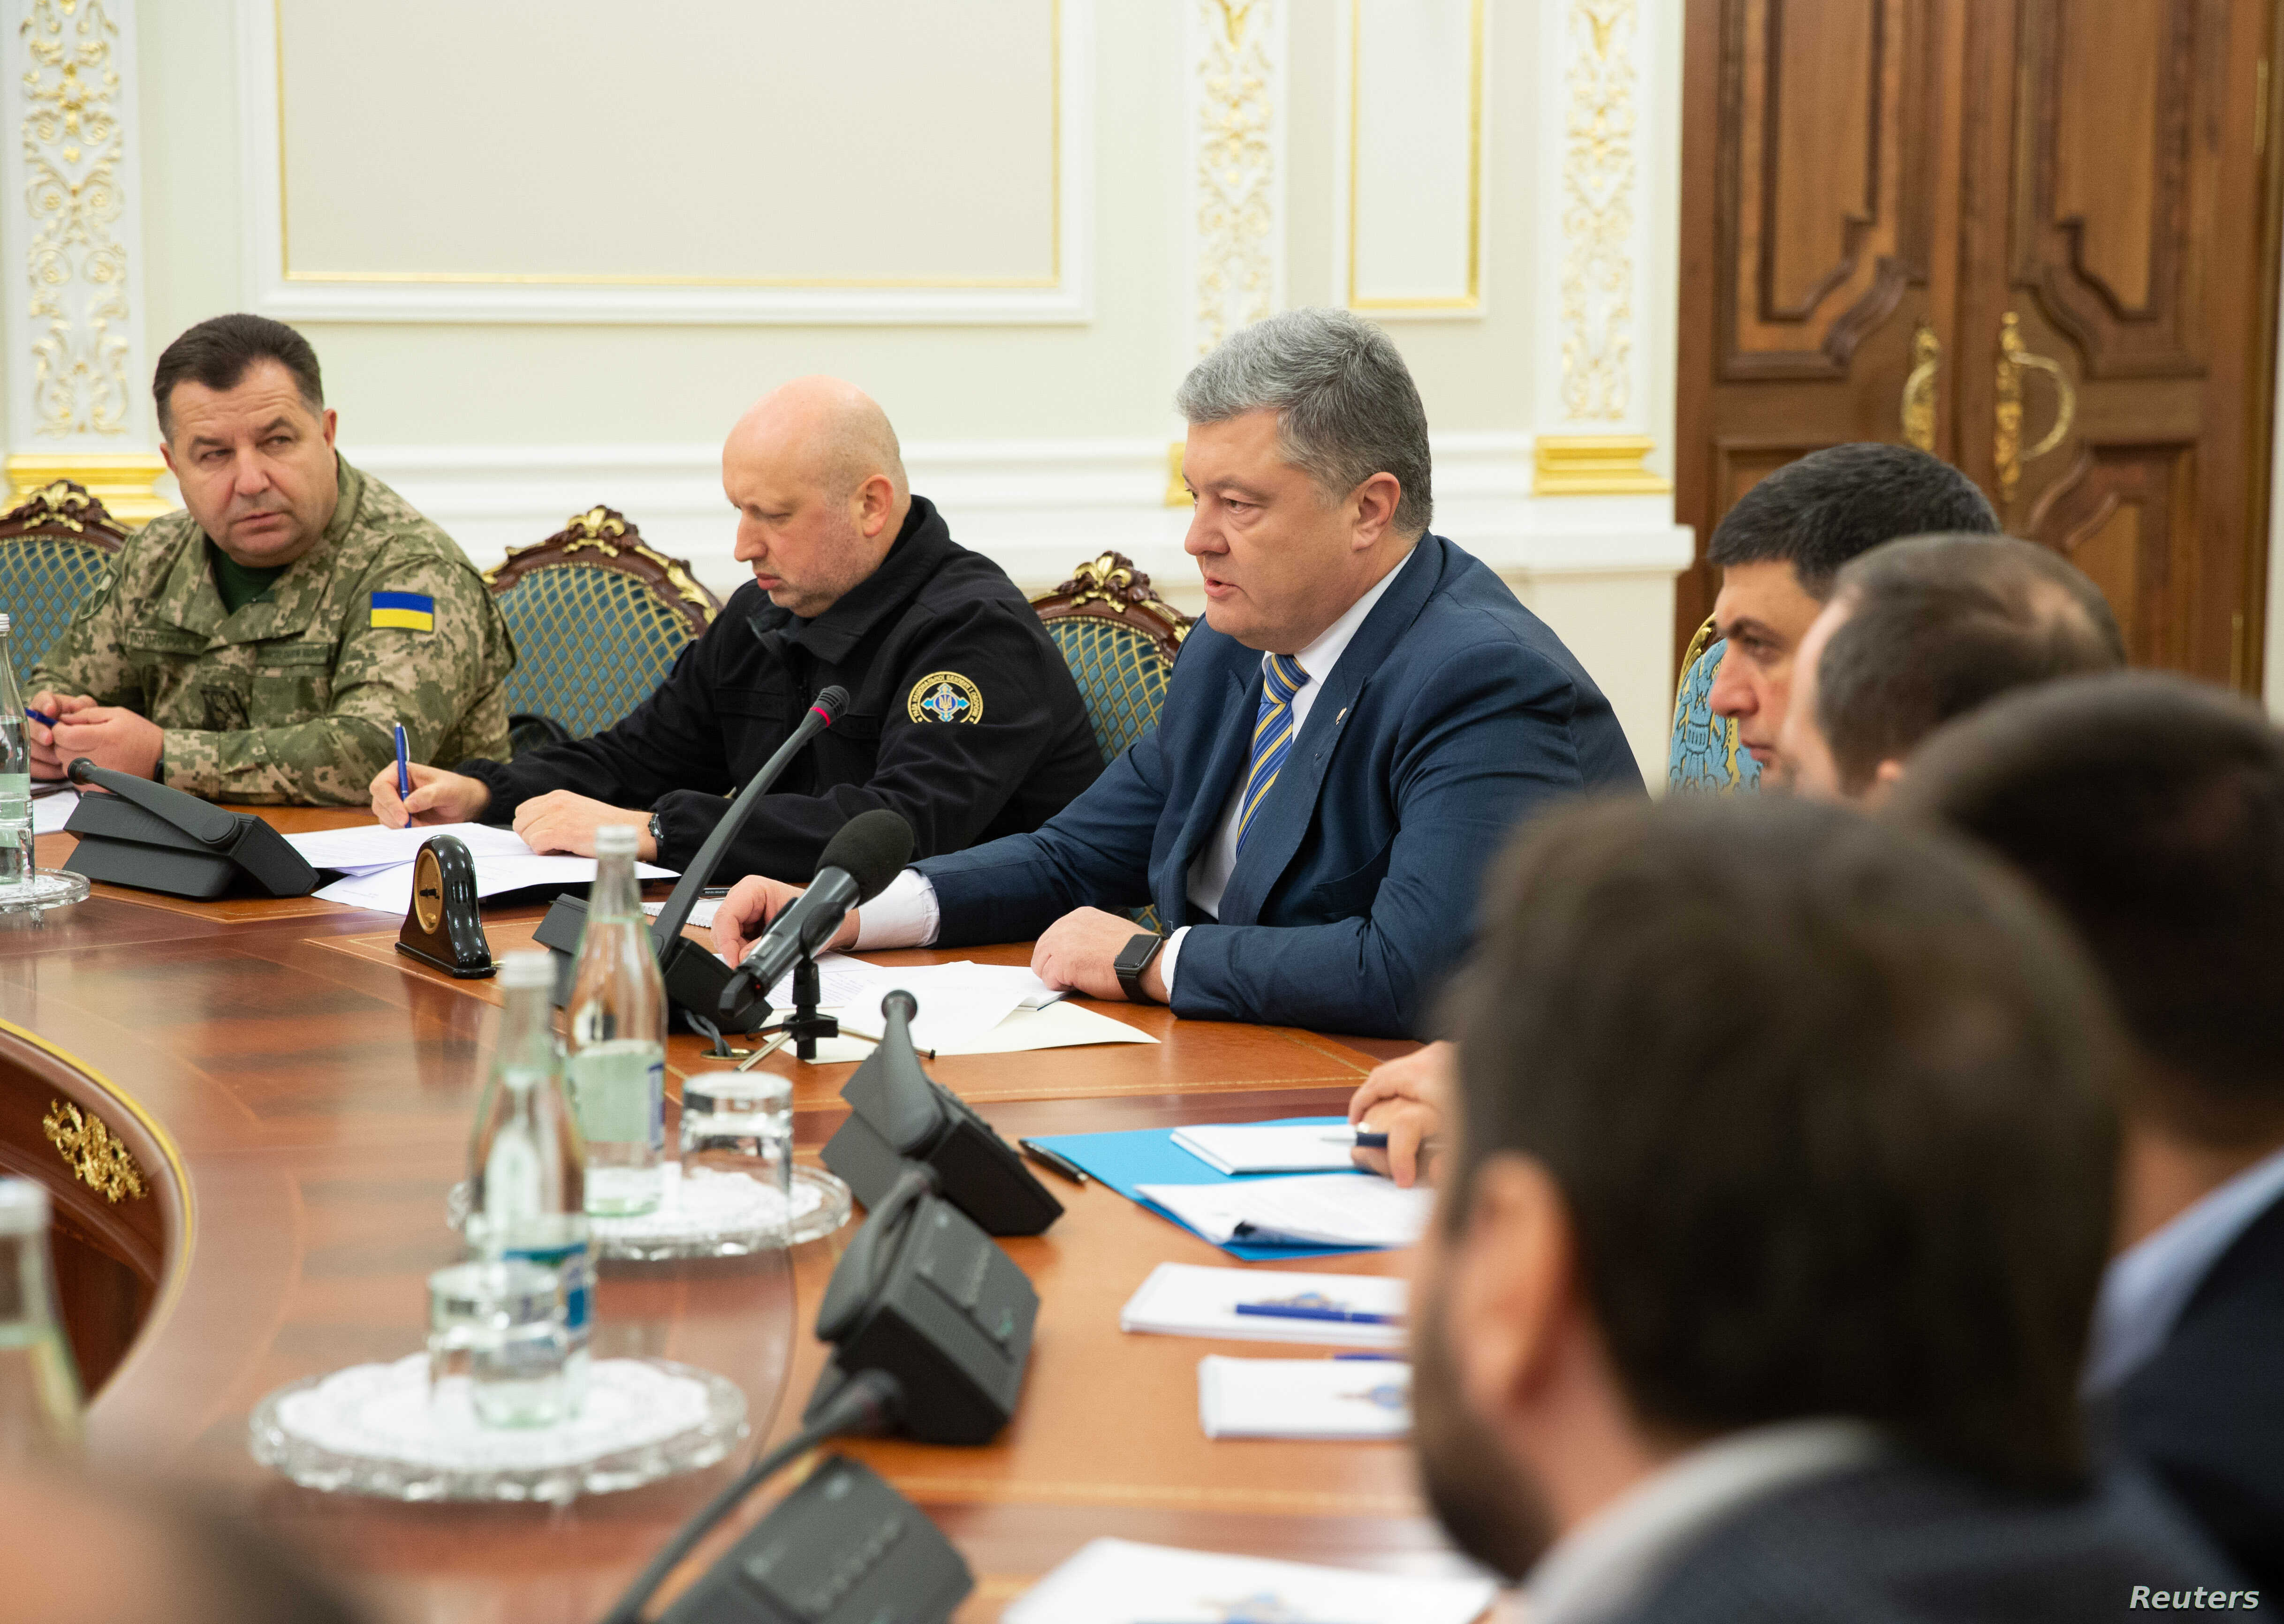 Ukrainian President Petro Poroshenko chairs a meeting of the National Security and Defense Council in Kyiv, Ukraine, Nov. 26, 2018.